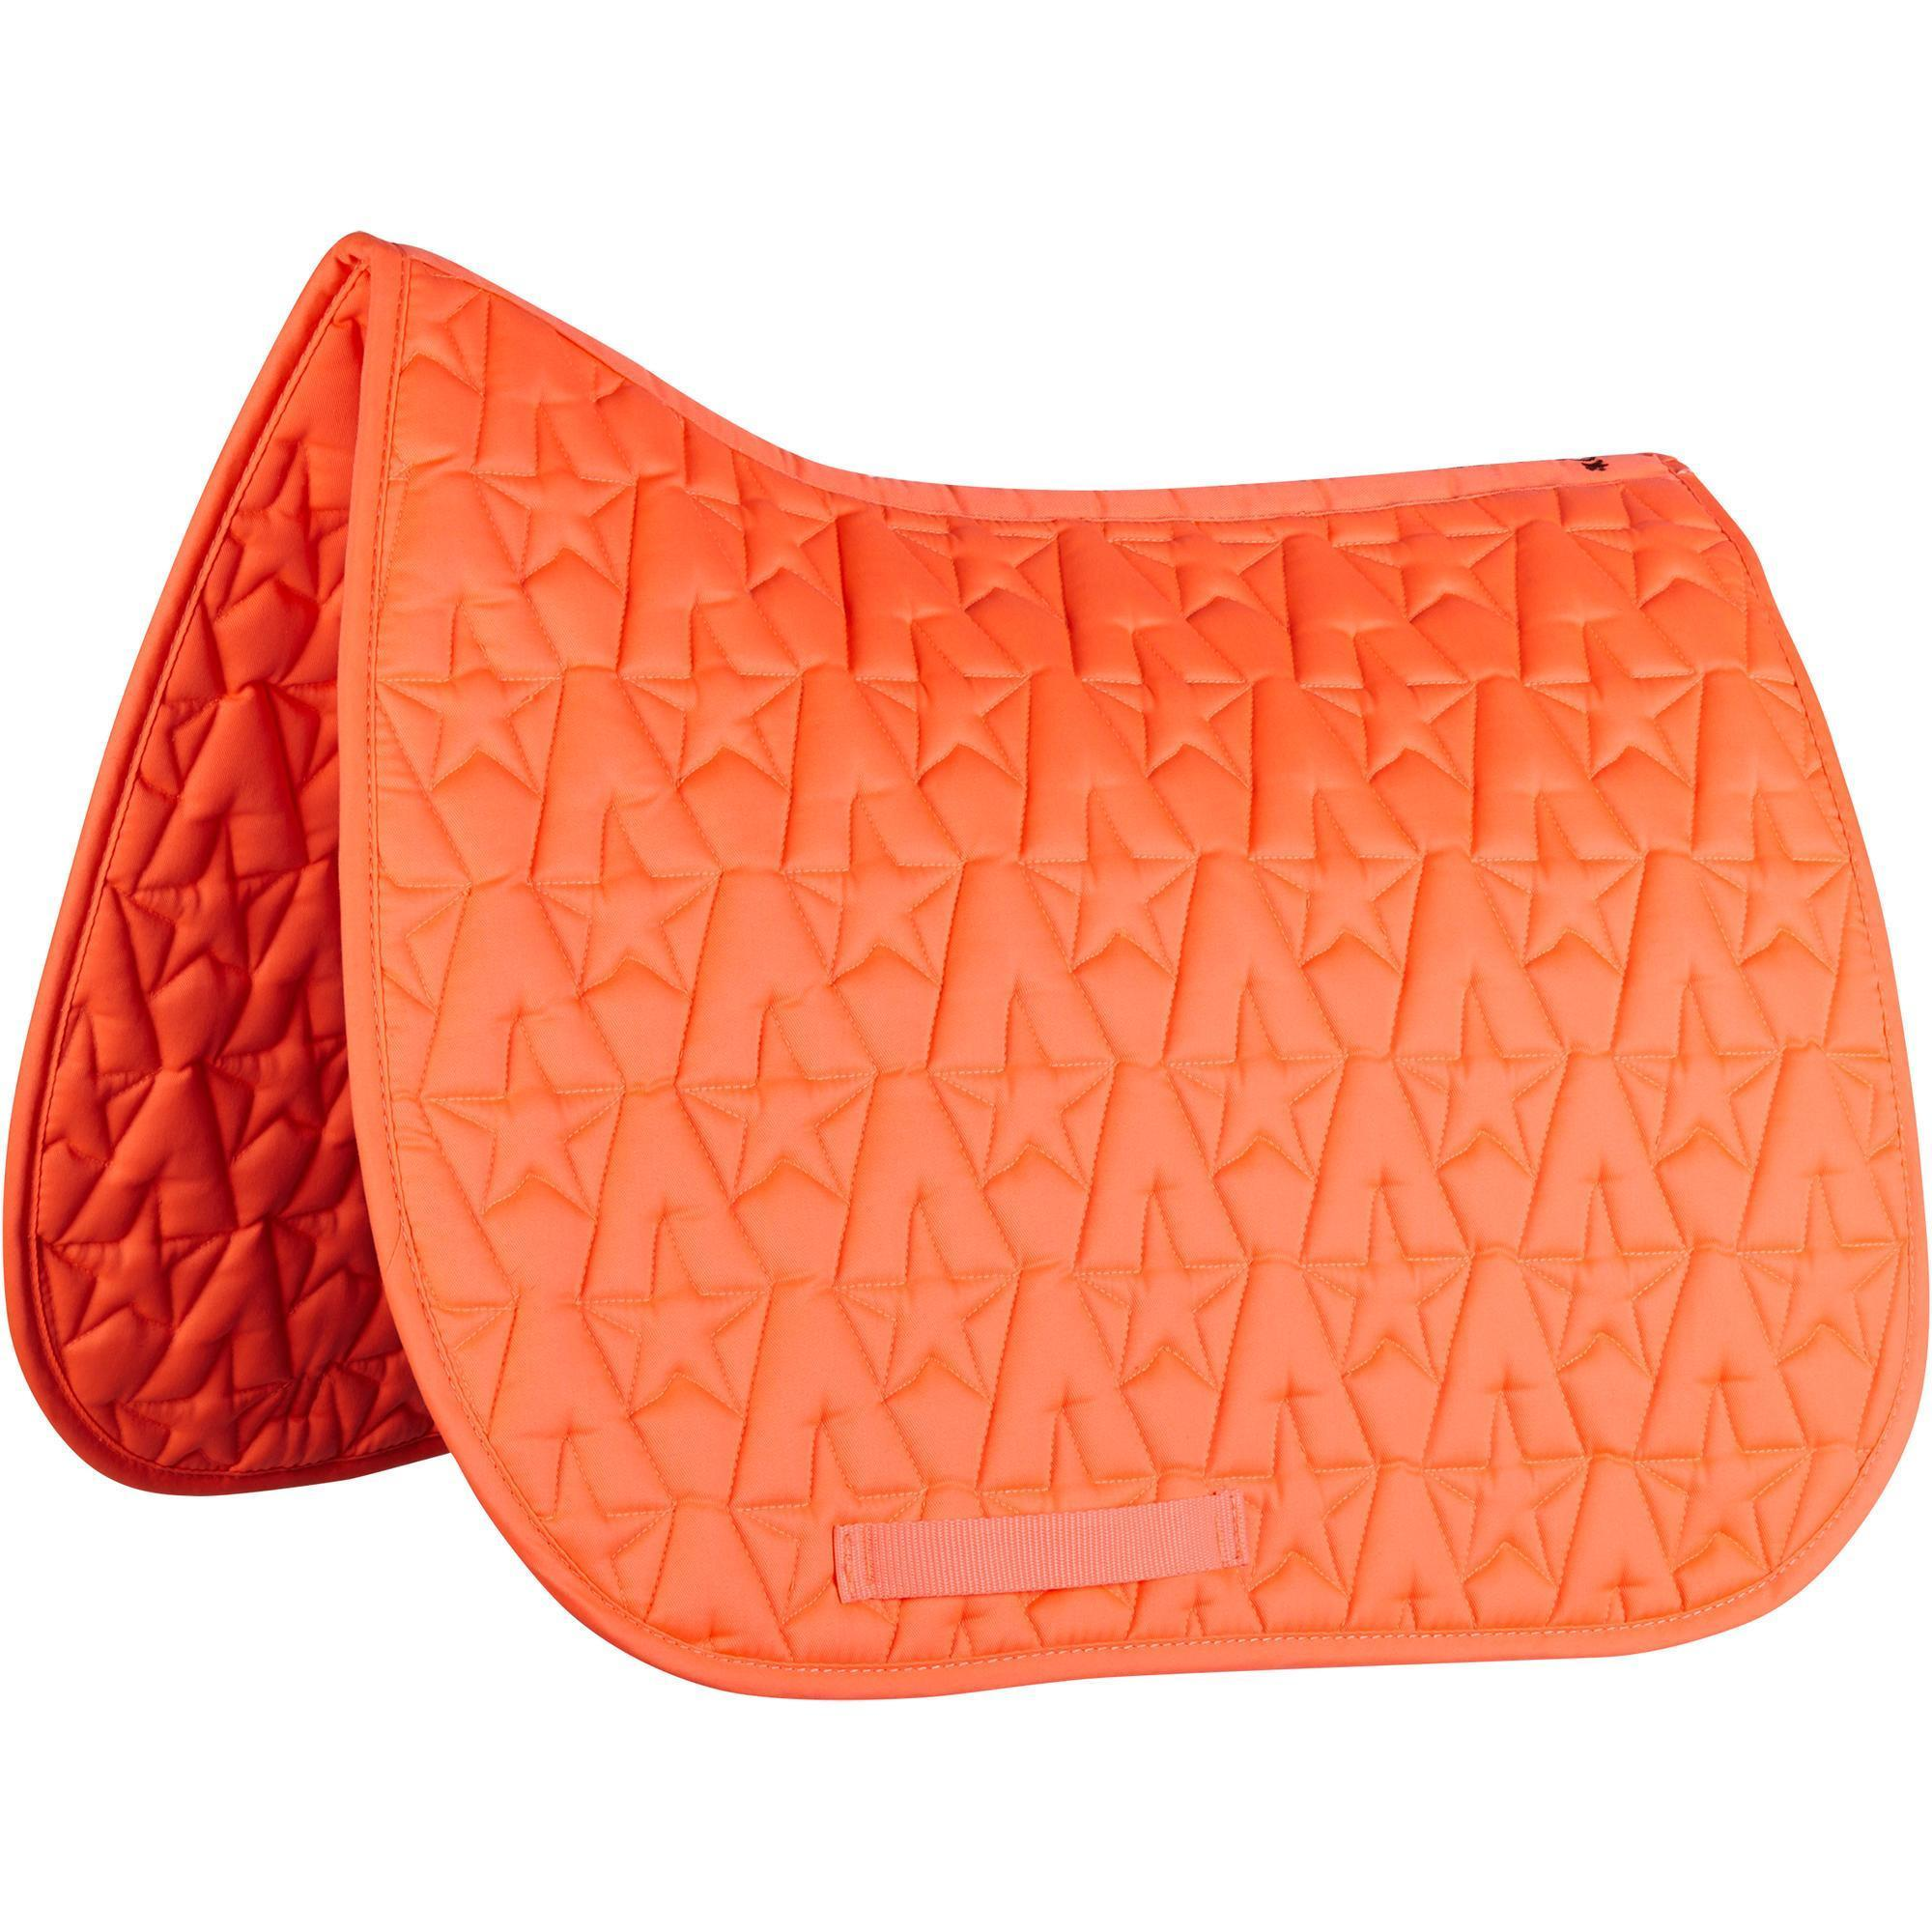 Tapis de selle quitation poney et cheval 100 star orange fluo fouganza Tapis cheval decathlon